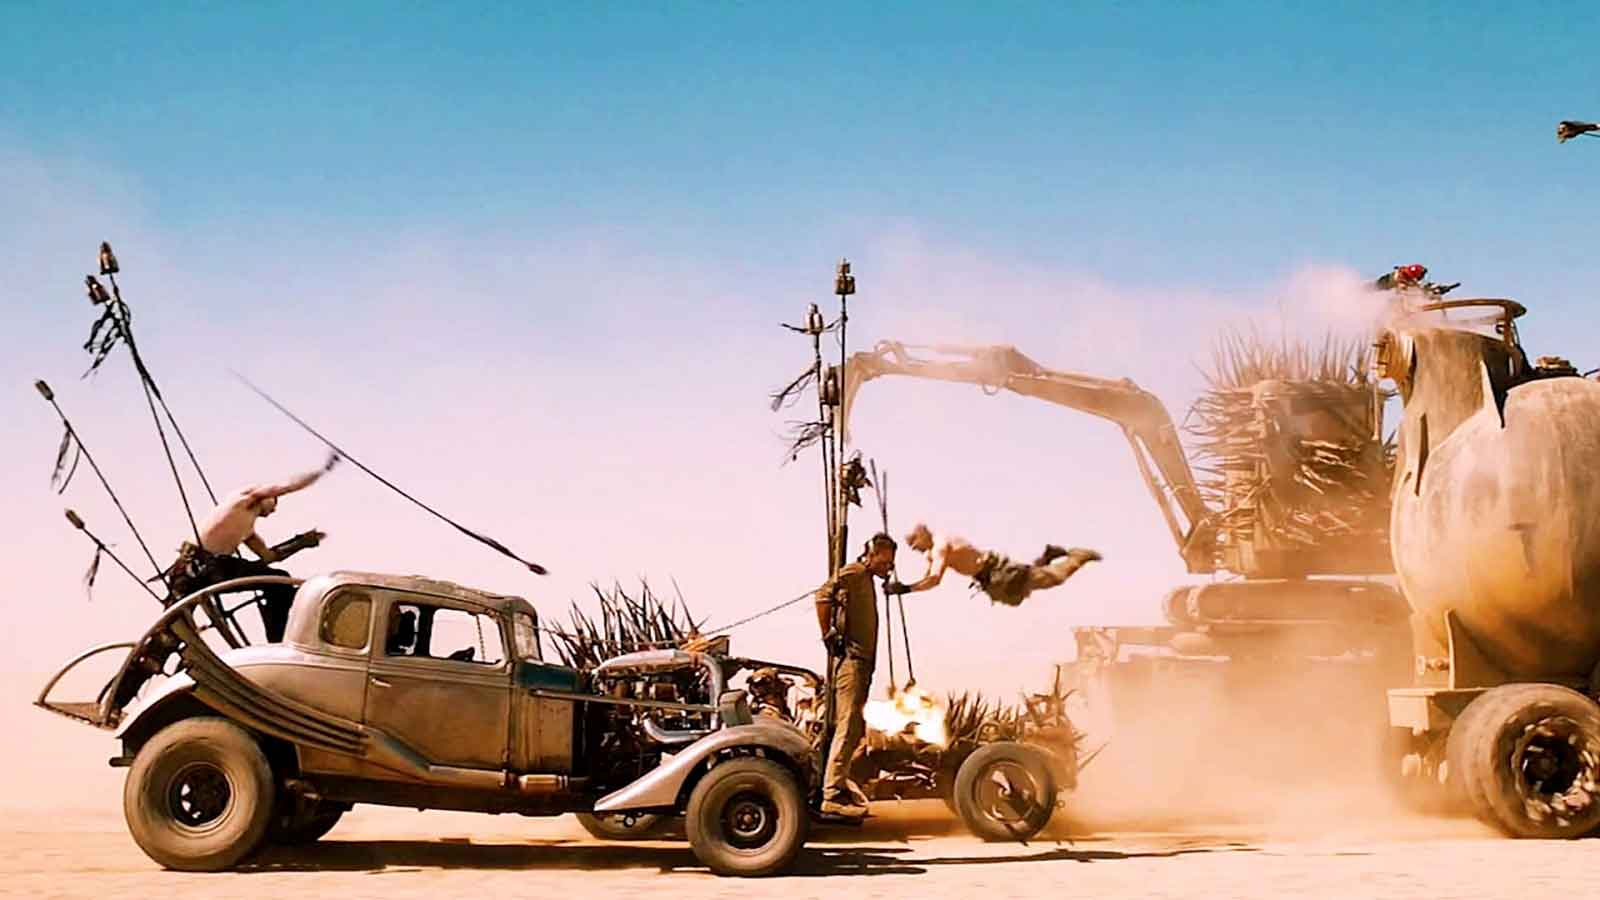 wacana-sinema-dunia-2015_15-mad-max-fury-road